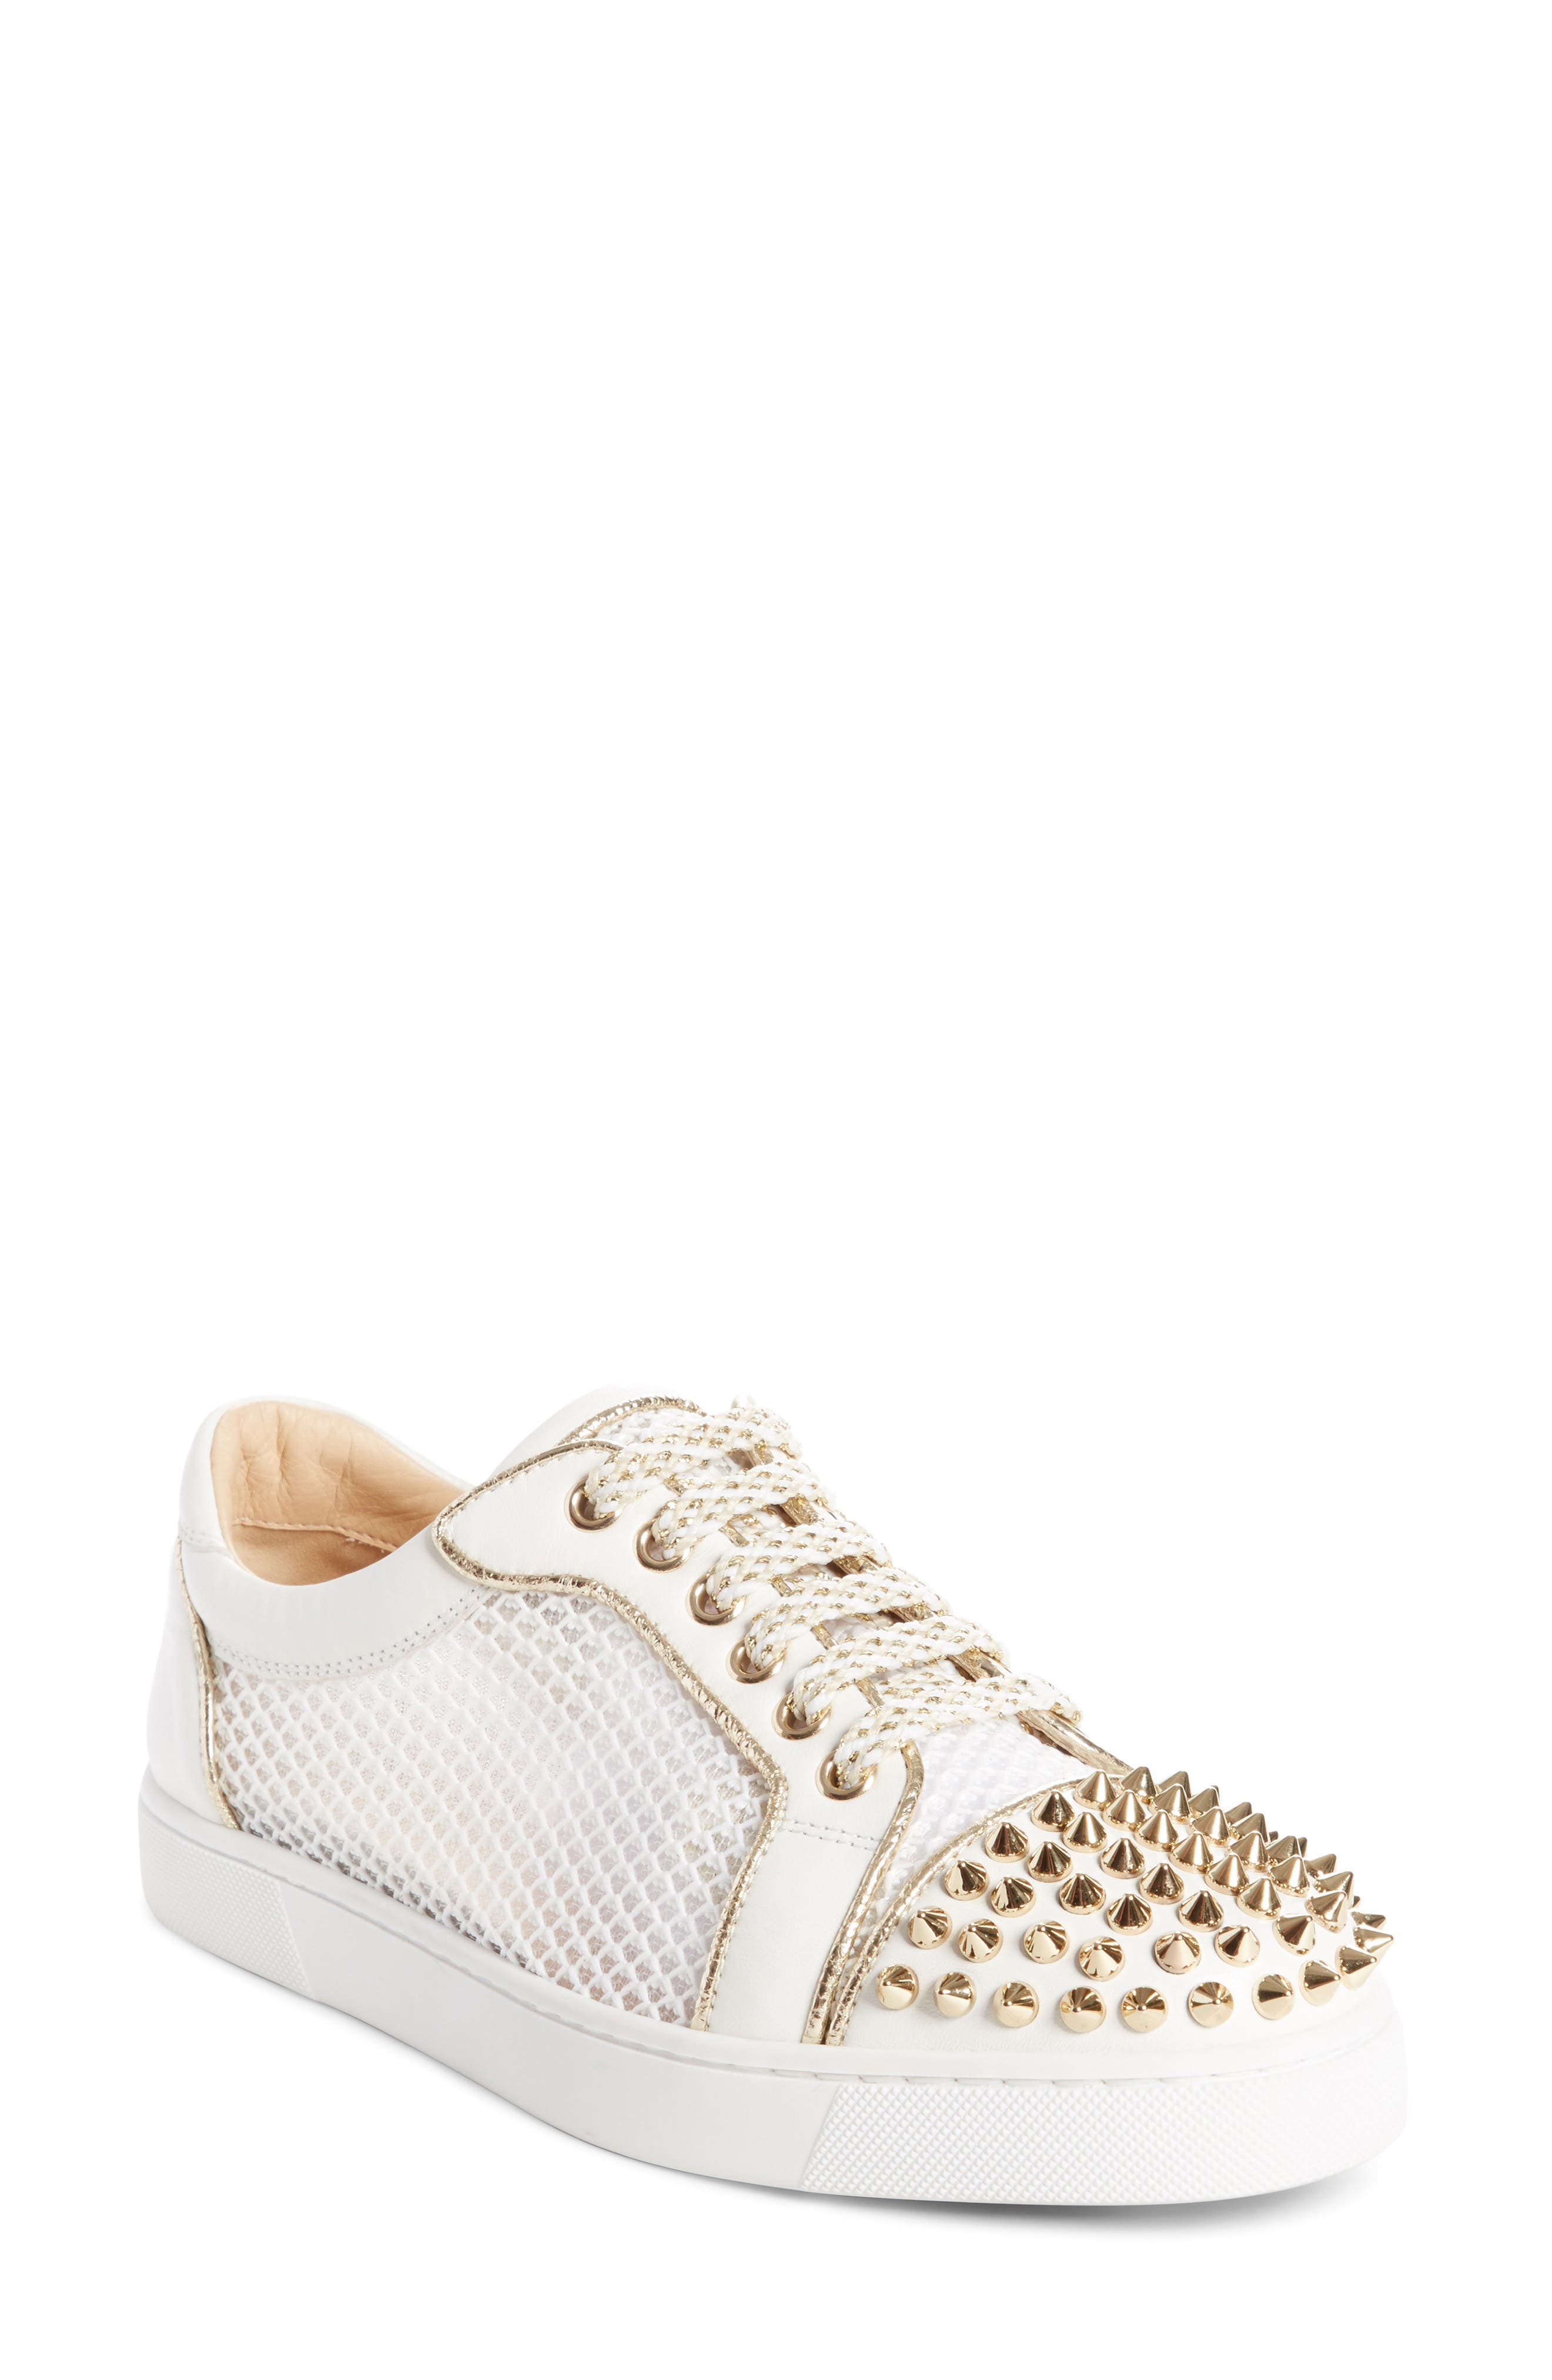 Vieira Spiked Low Top Sneaker,                         Main,                         color, LATTE/ LIGHT GOLD